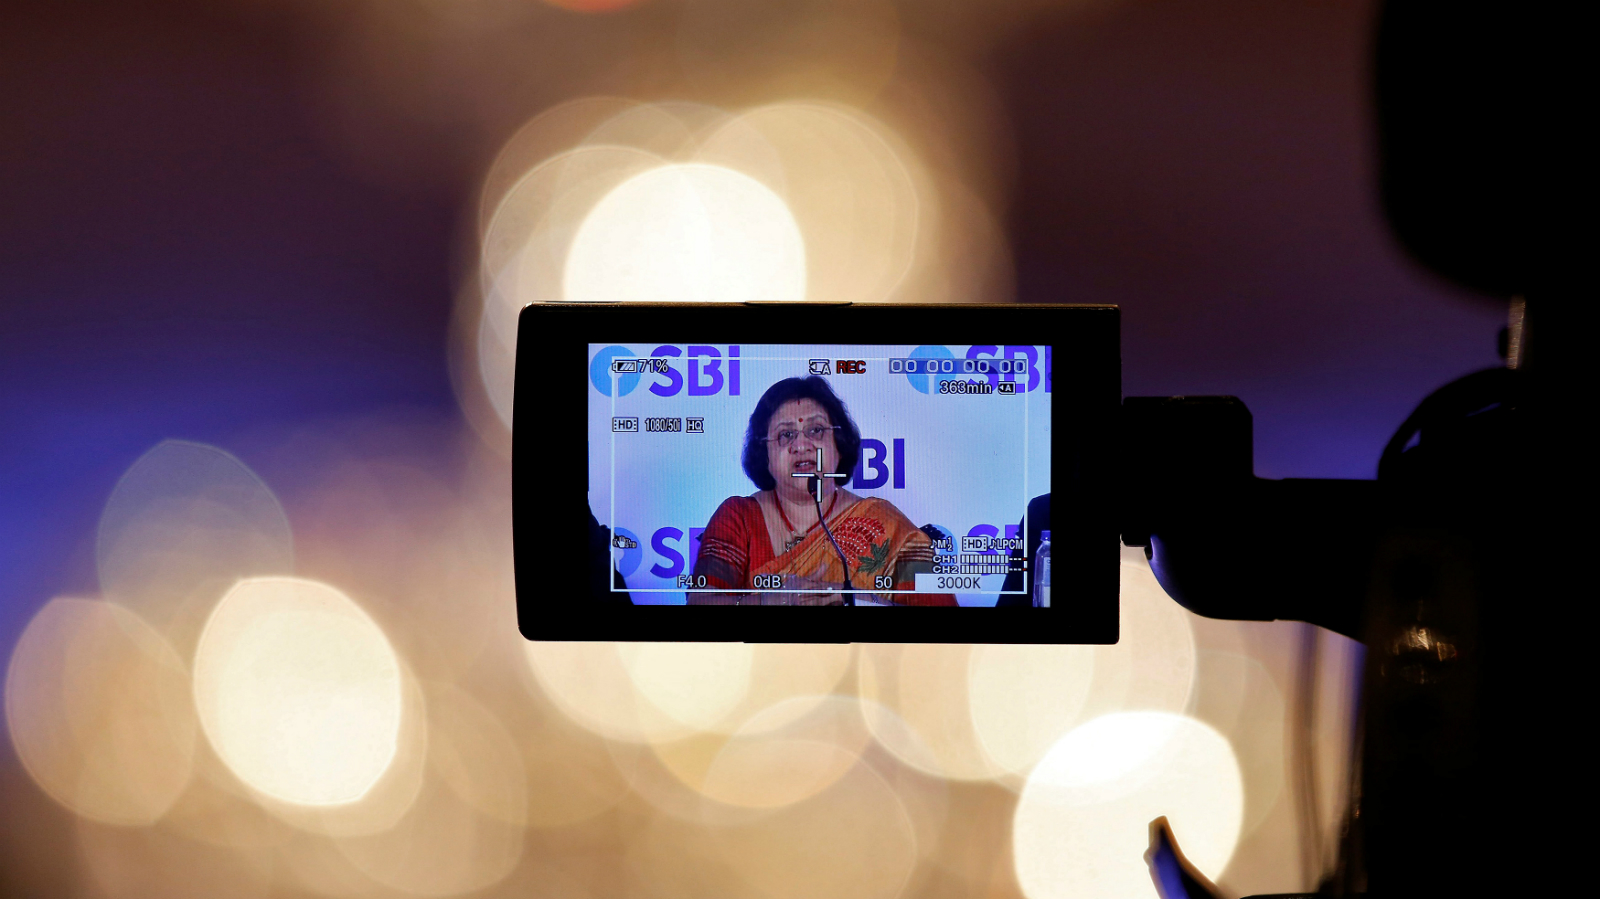 State Bank of India (SBI) chairwoman Arundhati Bhattacharya is seen in a TV camera's viewfinder as she speaks at a news conference after the announcement of SBI's fourth quarter results, in Kolkata, India, May 19, 2017.